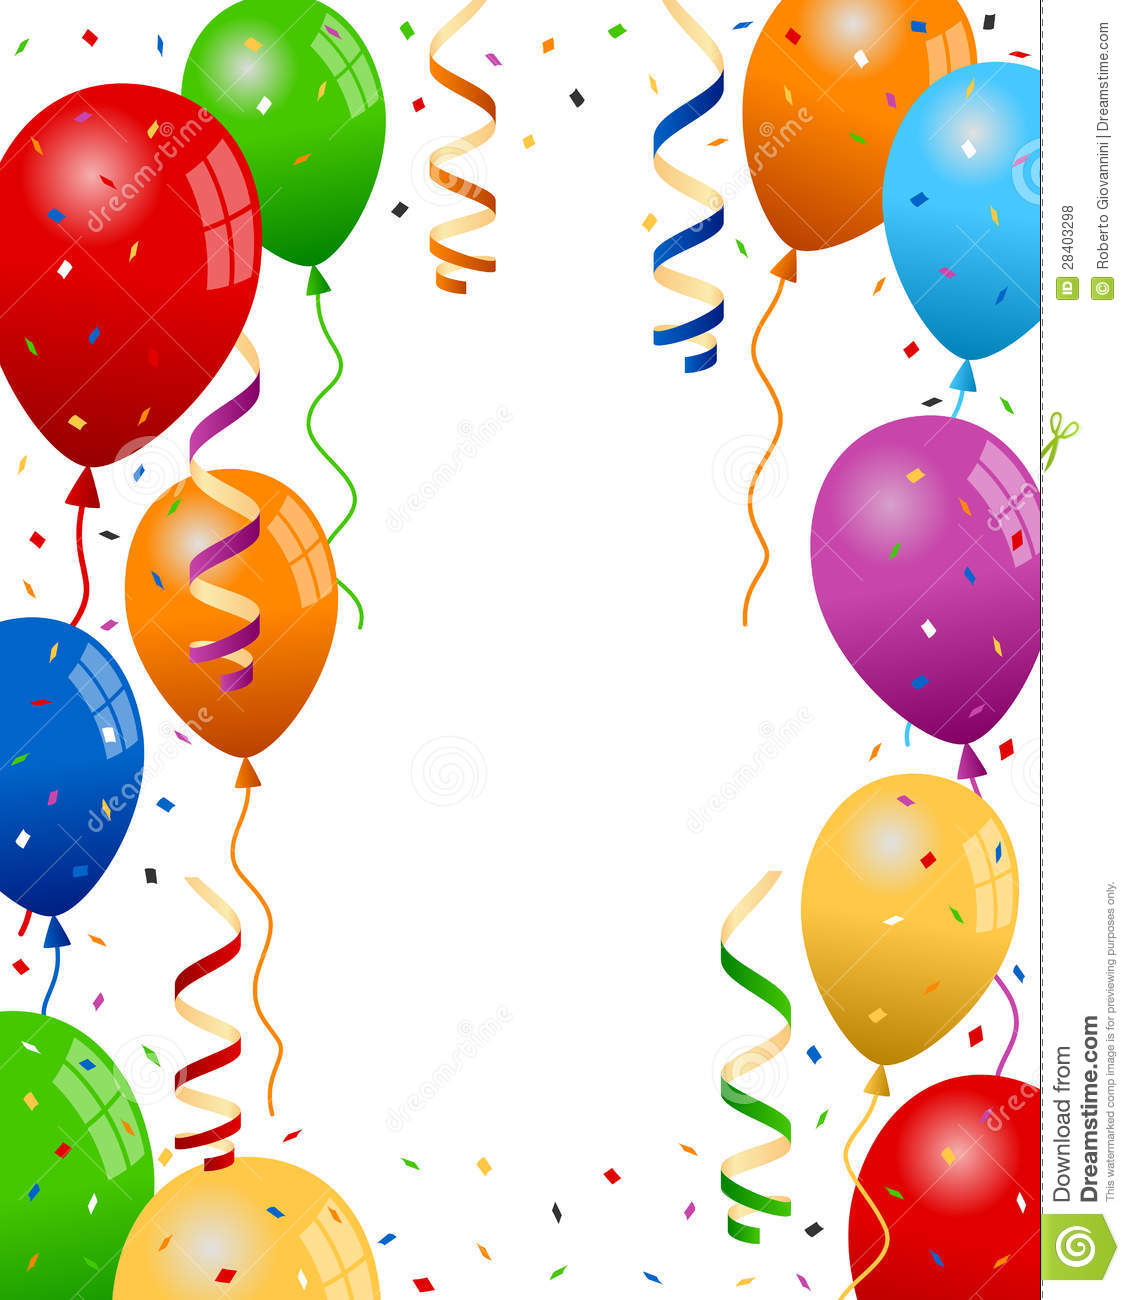 Party Balloons And Confetti Party Balloons Background 28403298 Jpg